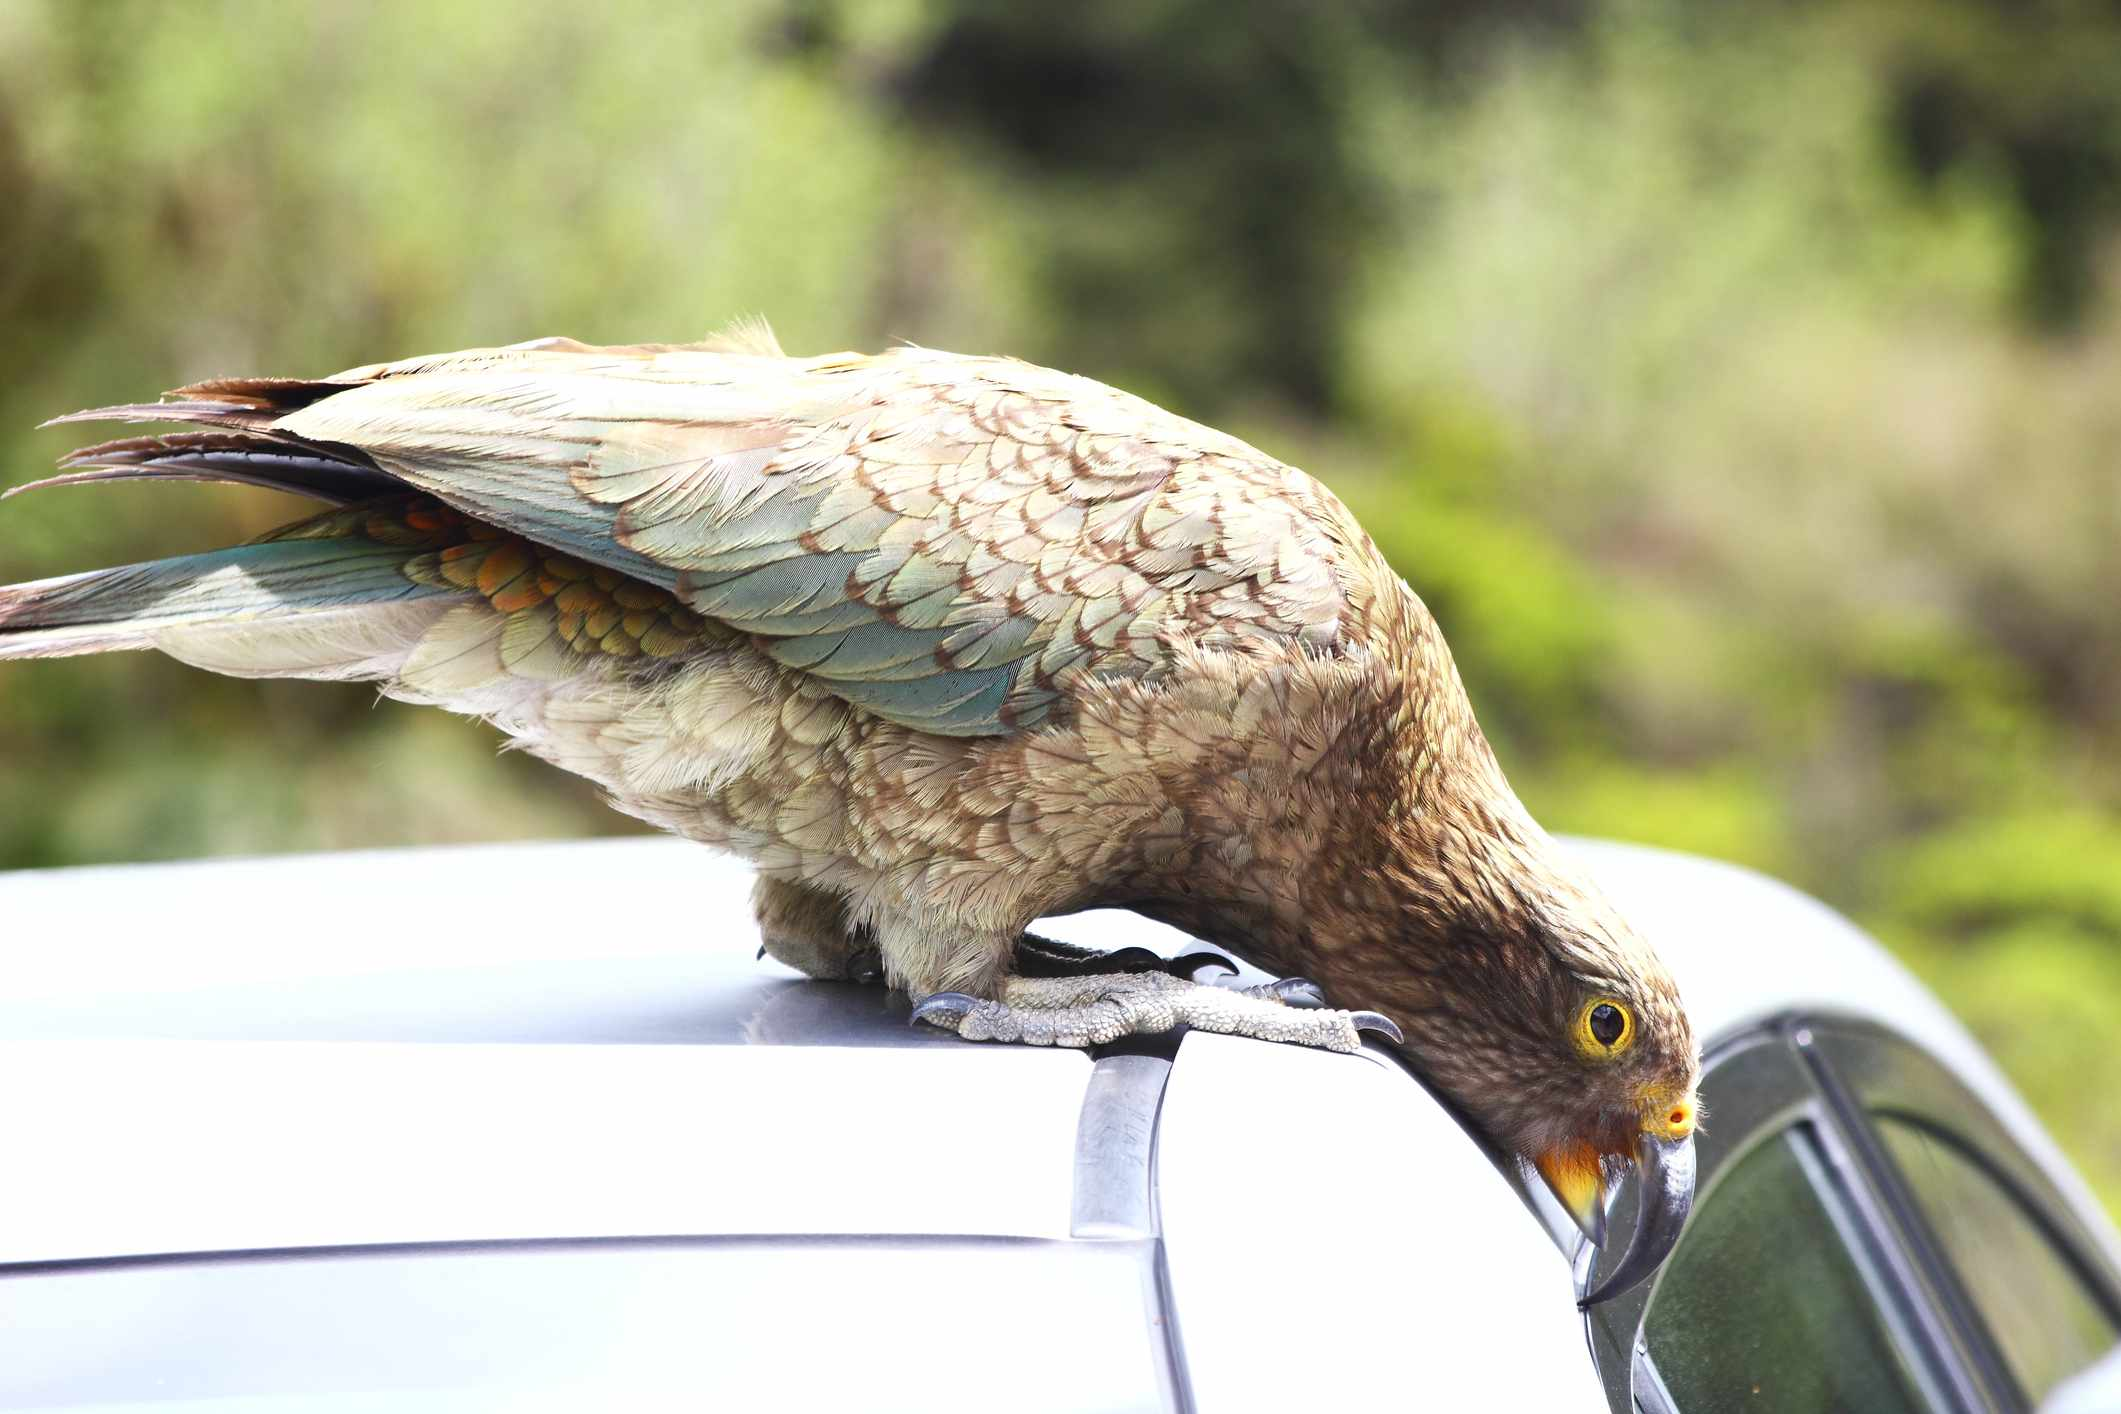 Kea parrot investigating a car. © J Knaupe/Getty